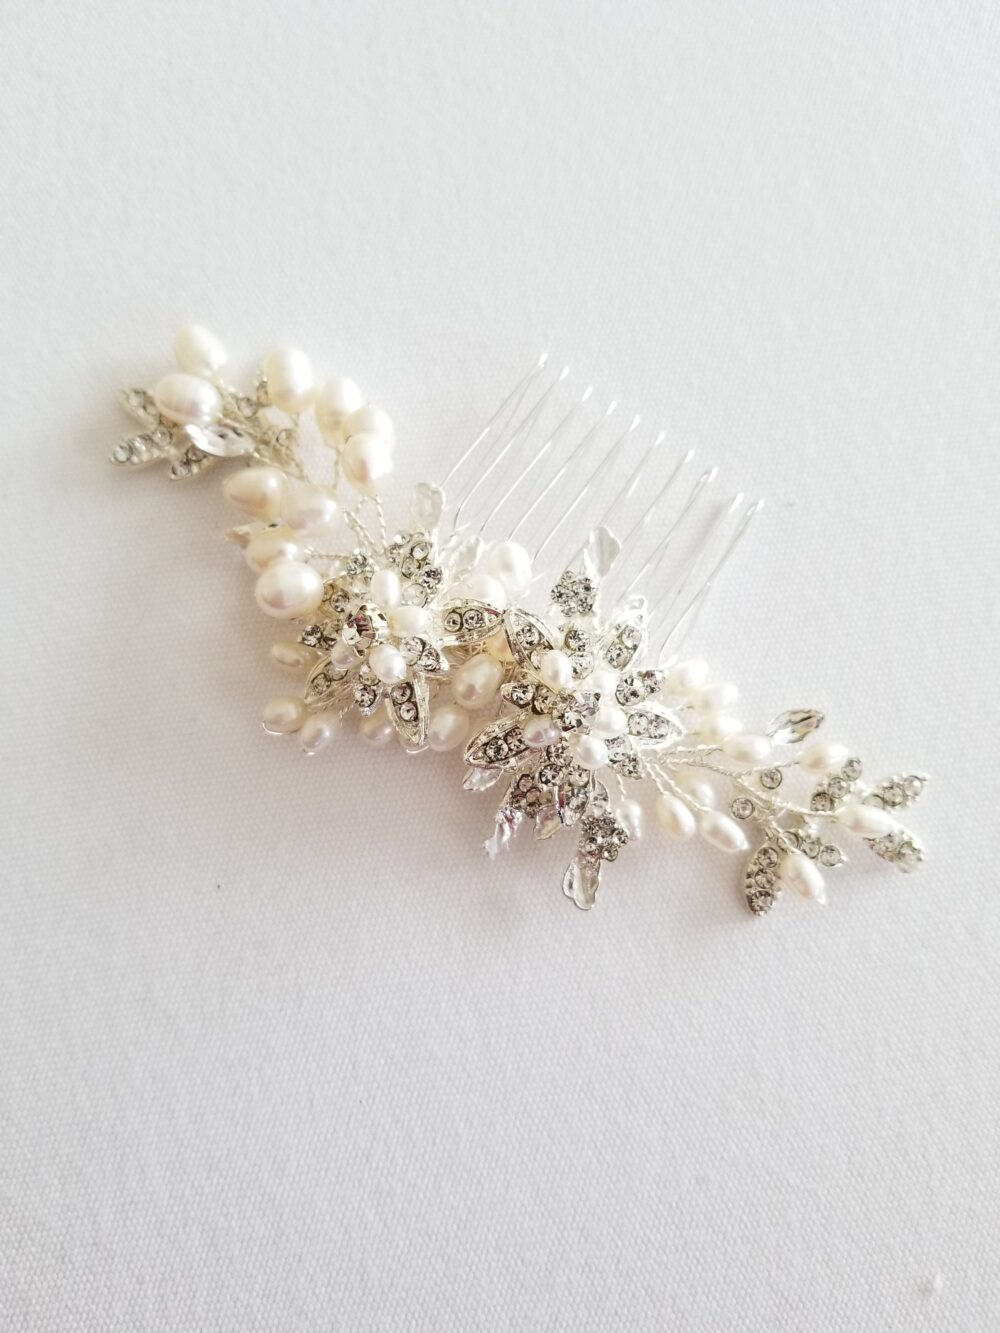 Freshwater Pearl Wedding Hair Comb, Crystal Bridal Comb For Bride